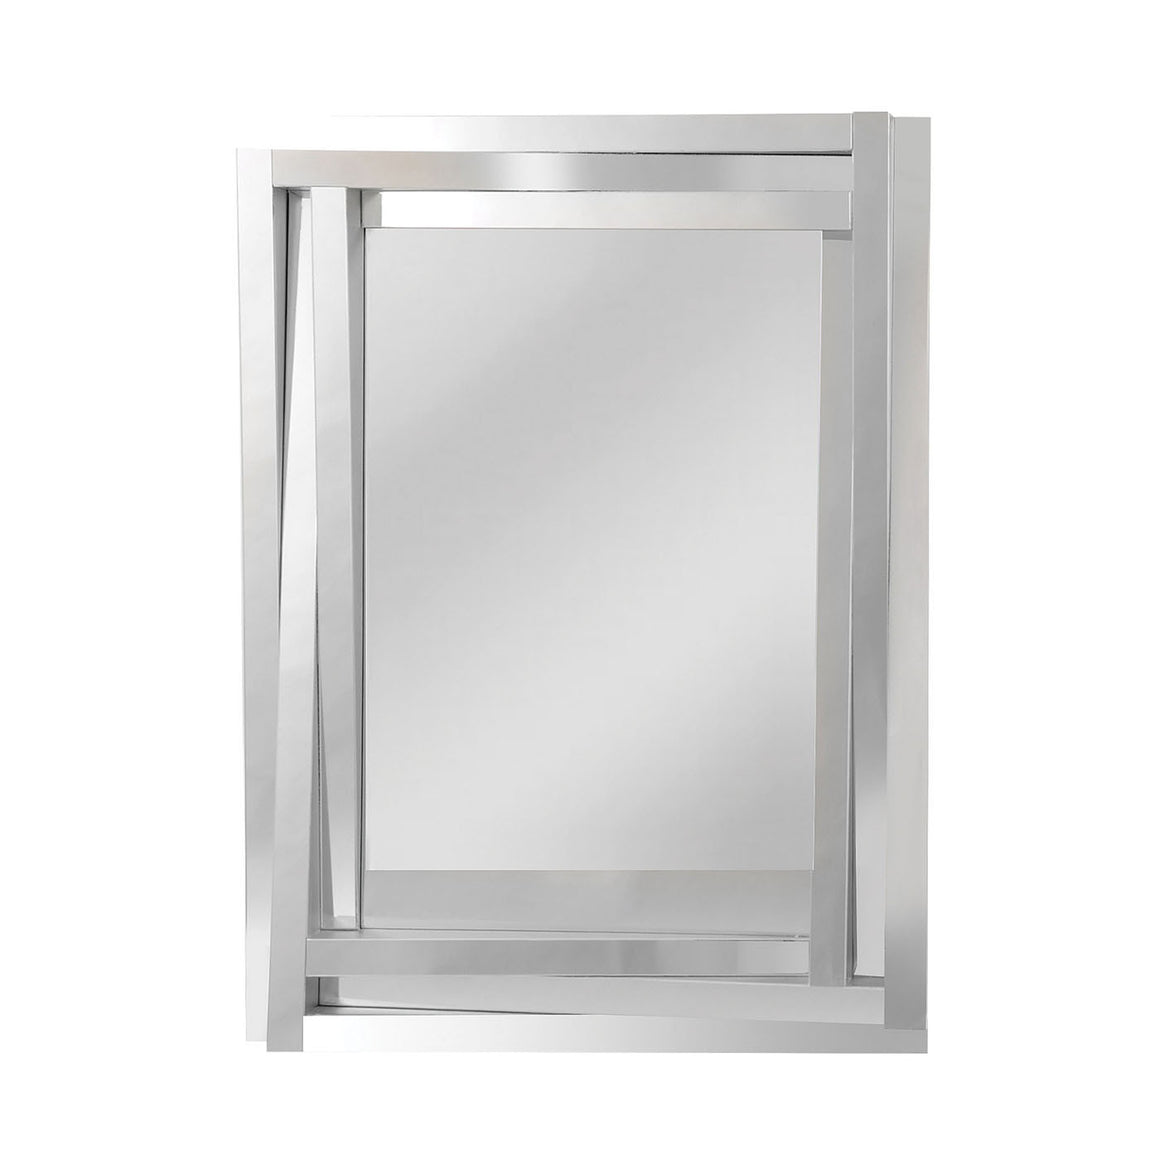 "Tiverio Mirror 40"" x 30"""